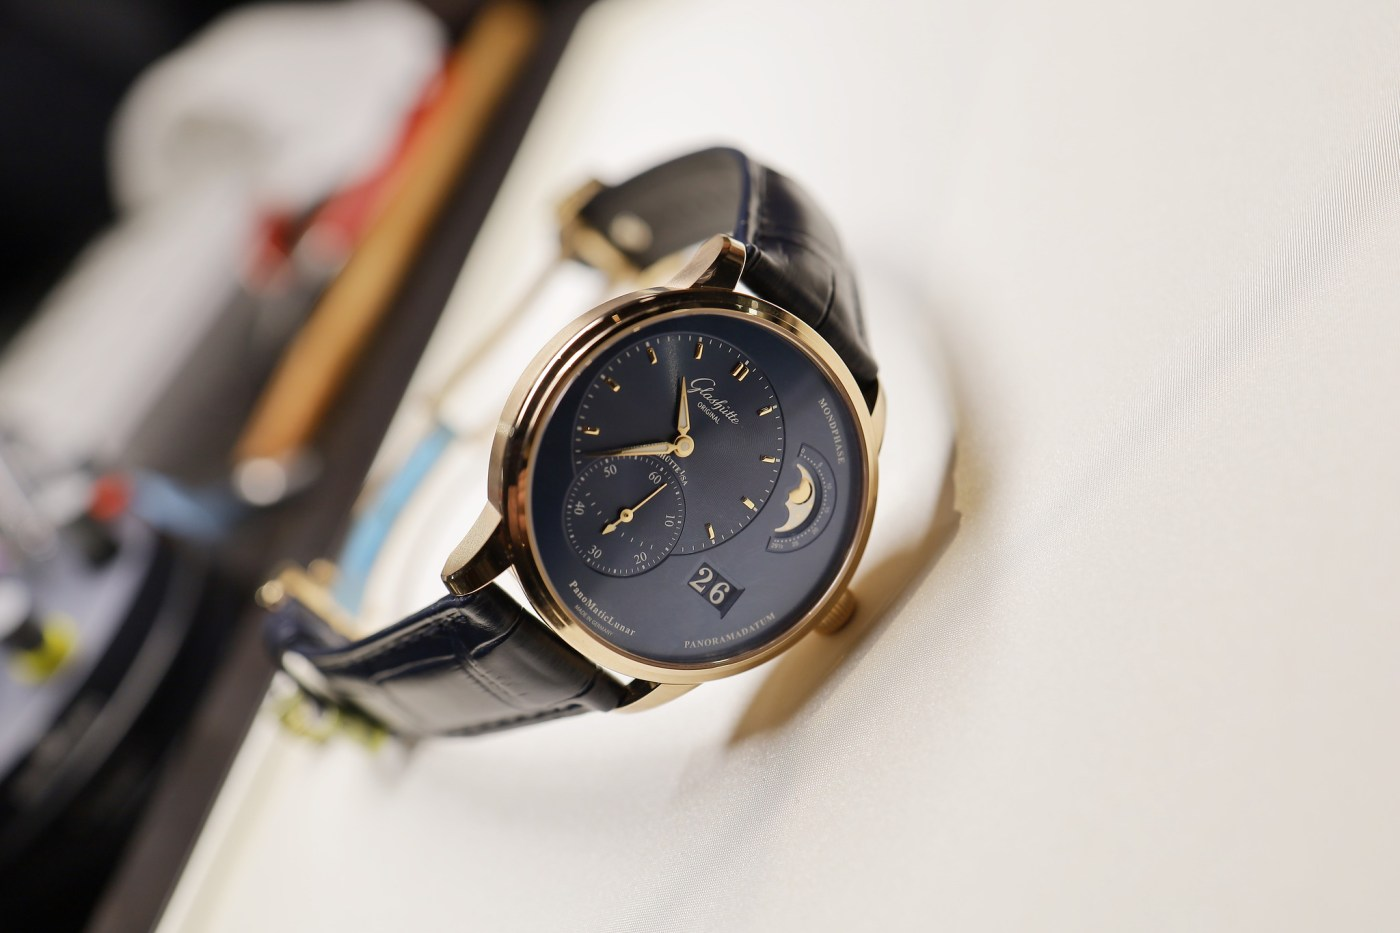 Glashutte Original PanoMaticLunar in solid 18K gold